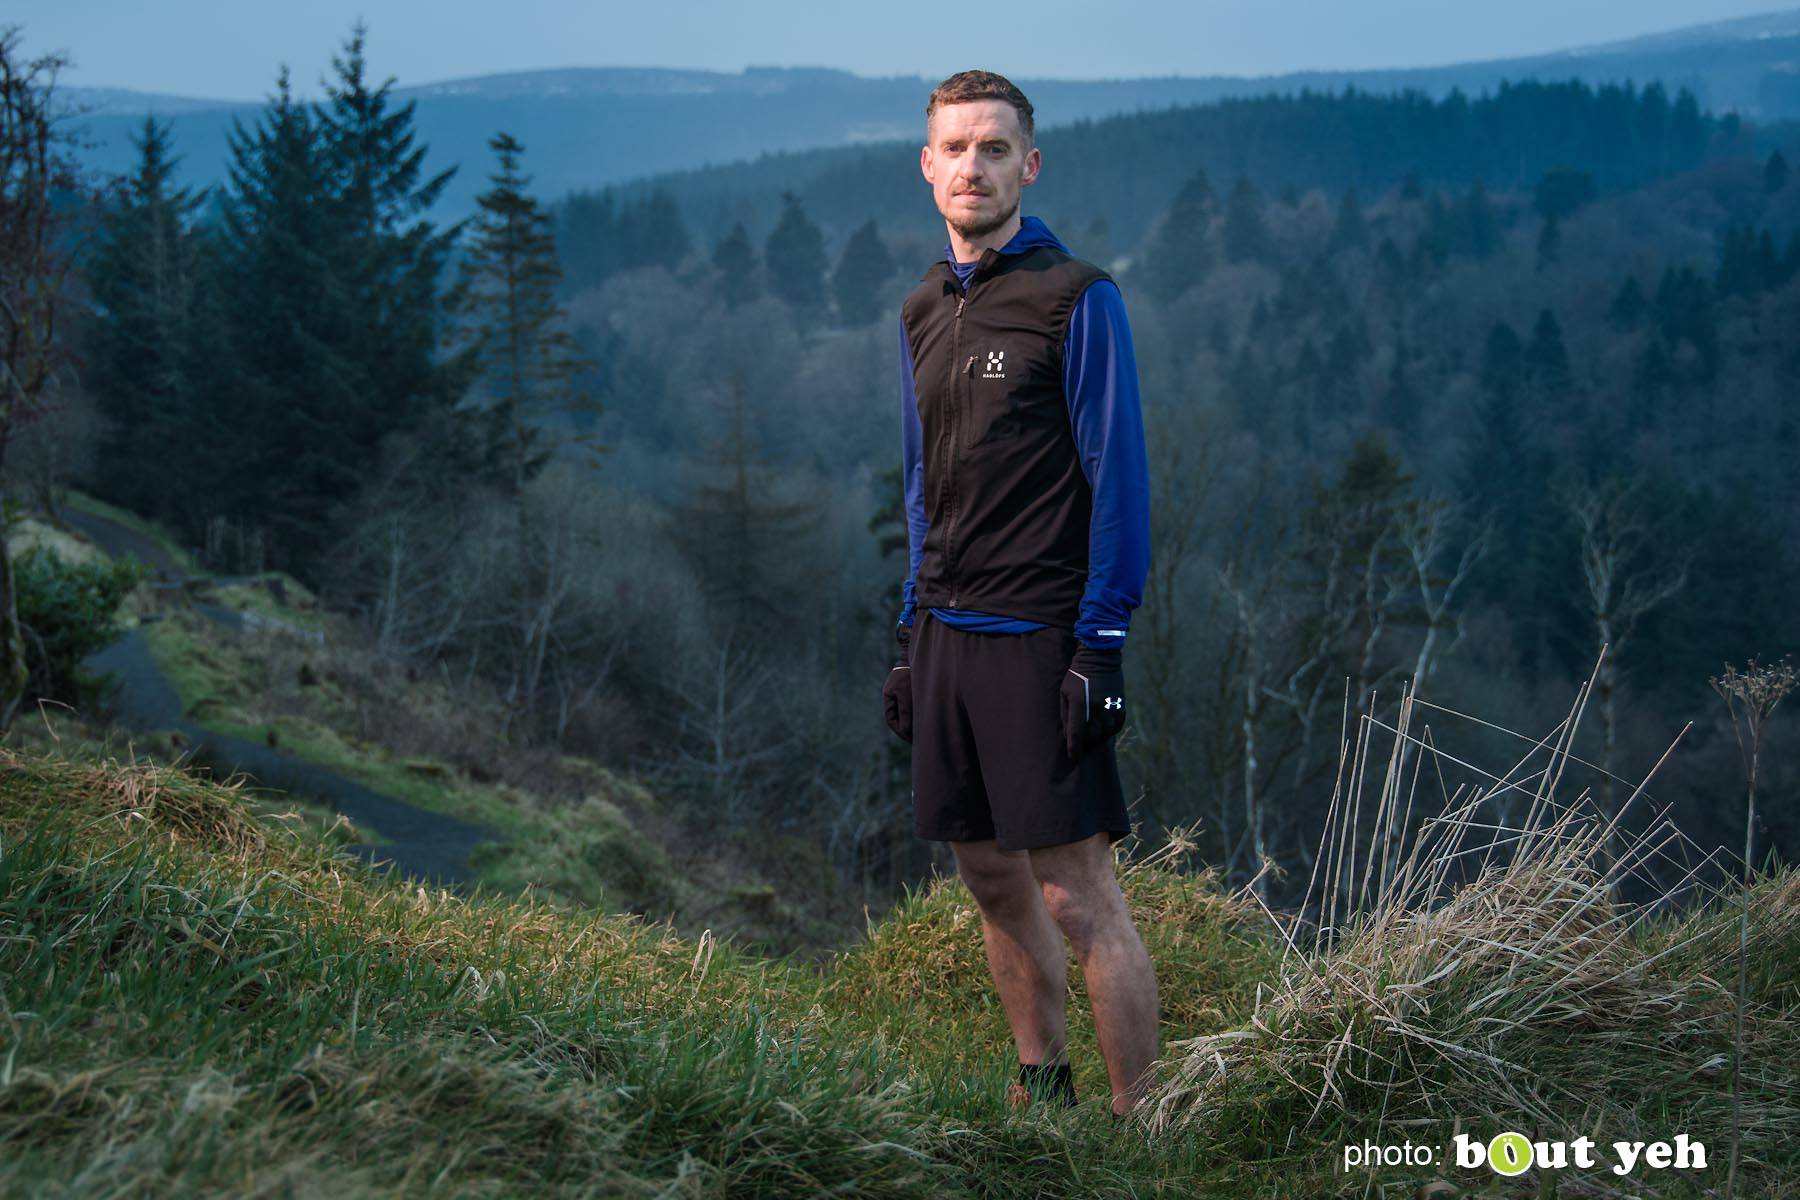 Tim, of Ballymena Runners, at Glenariff Forest, Northern Ireland - photo 0611.